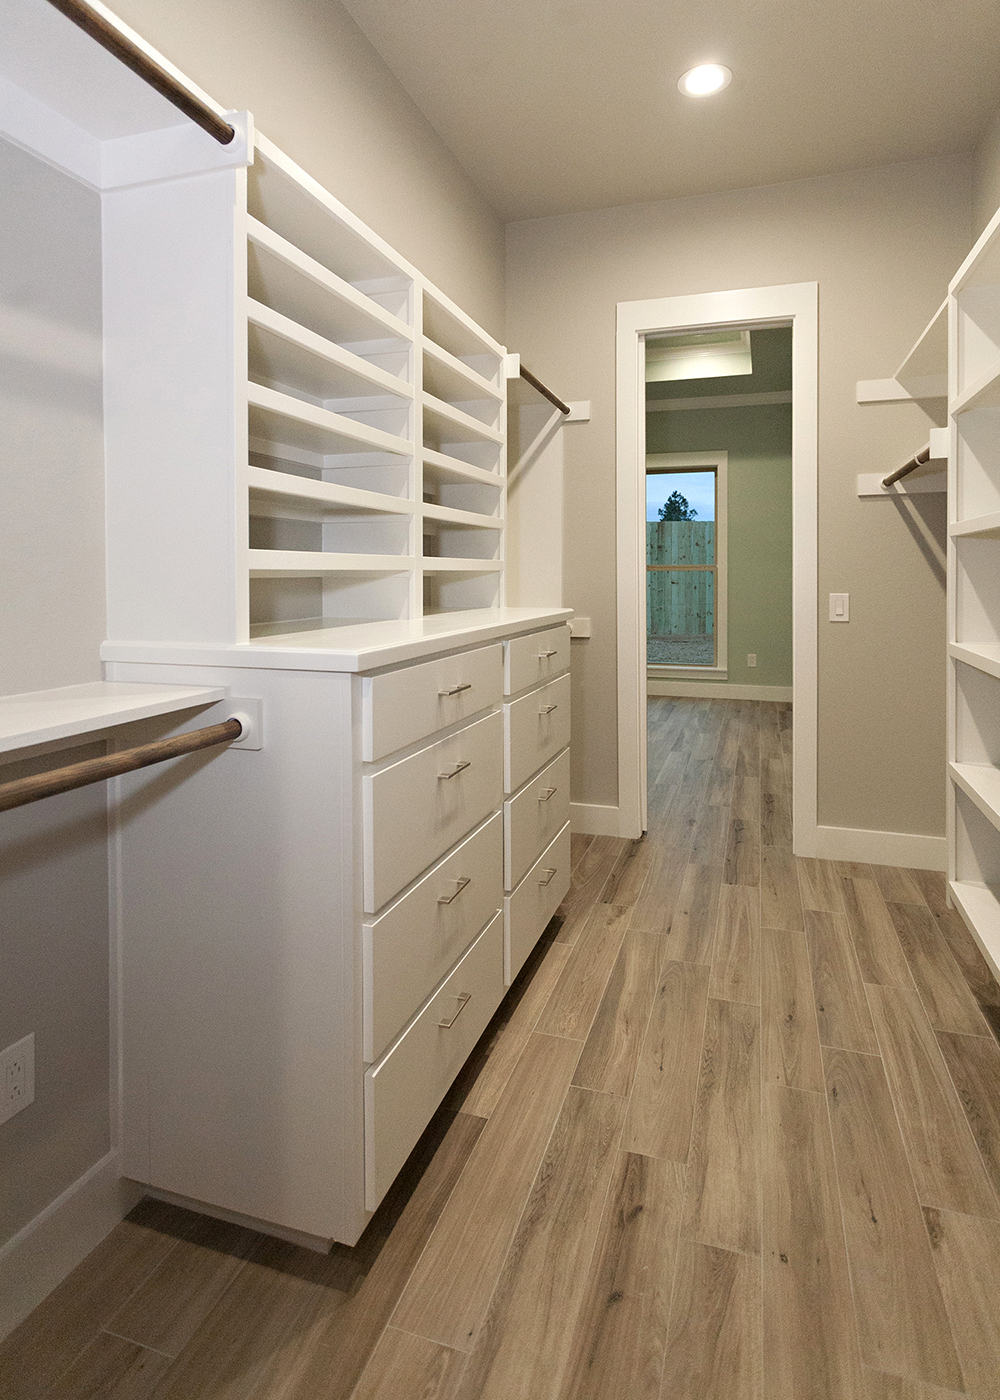 Reidy Modern Style Home Master Walkthrough Closet with built in cabinets and shelving